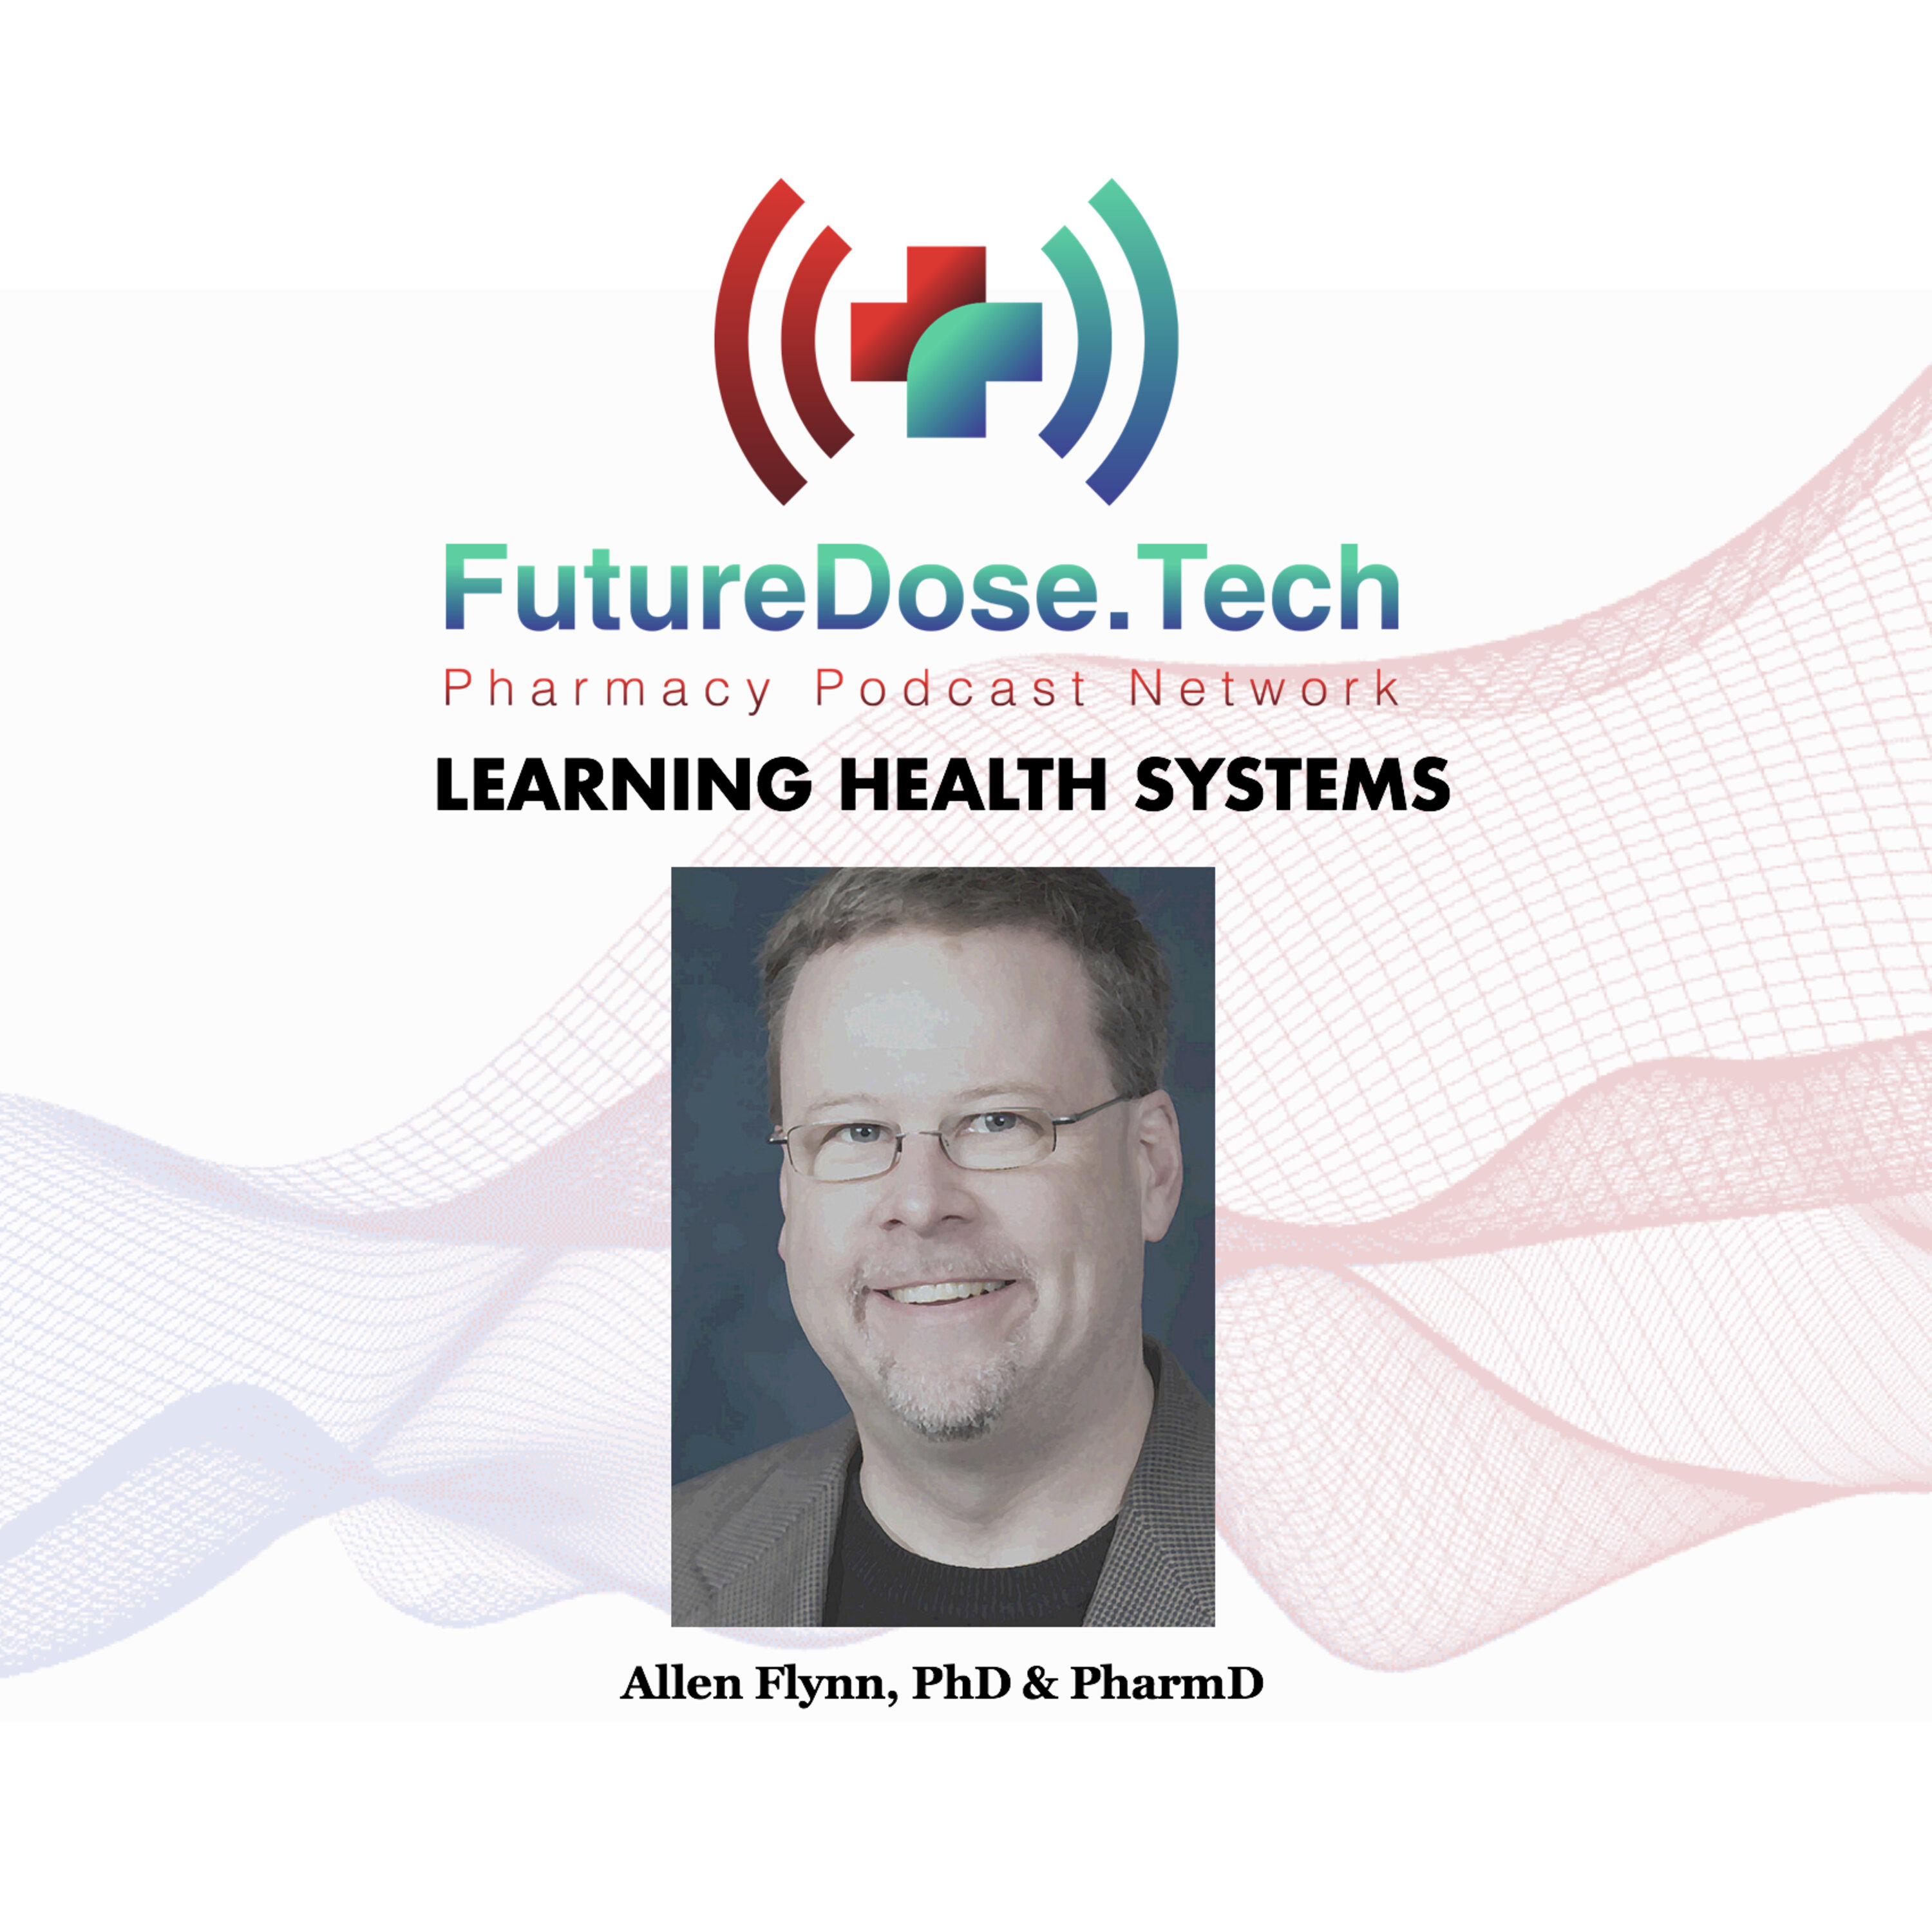 What are 'Learning Health Systems' special guest Allen Flynn, PhD, PharmD   FutureDose.tech